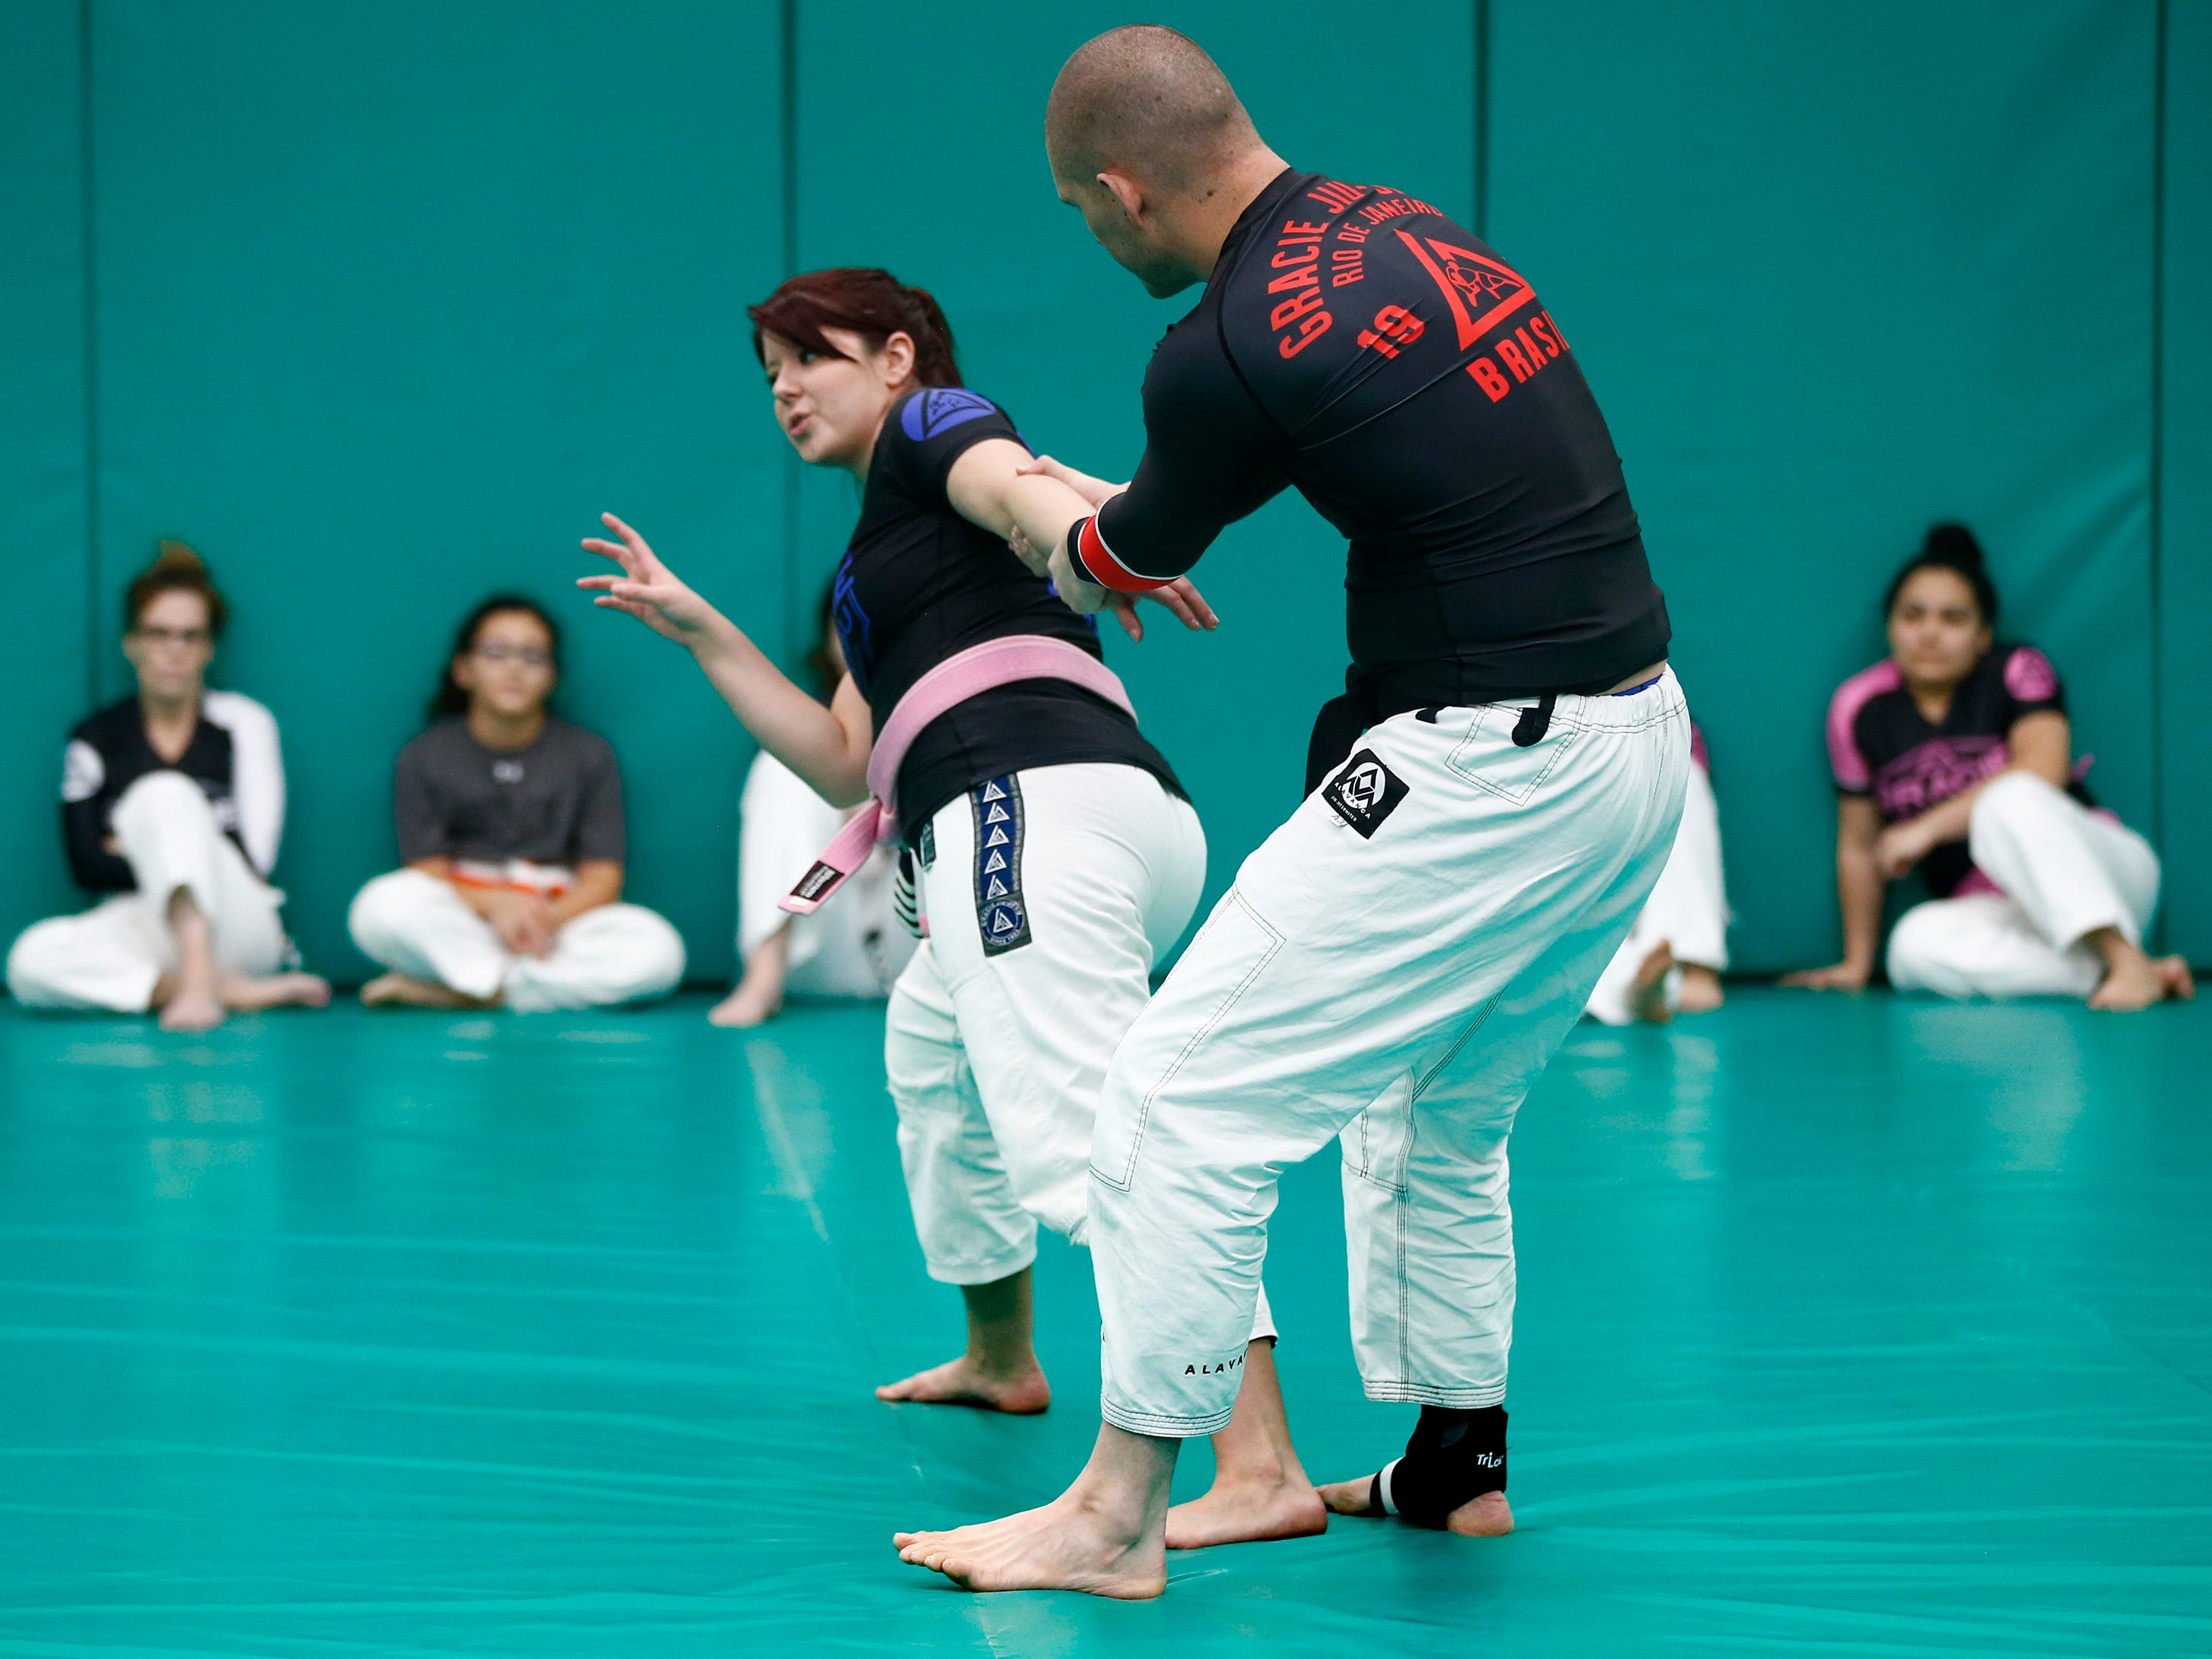 Danielle Rabideaux and Skye Middleton demonstrate a battle base stance during a self defense workshop for first-time students at Gracie Jiu-Jitsu Milwaukee in Wauwatosa on Jan. 5.